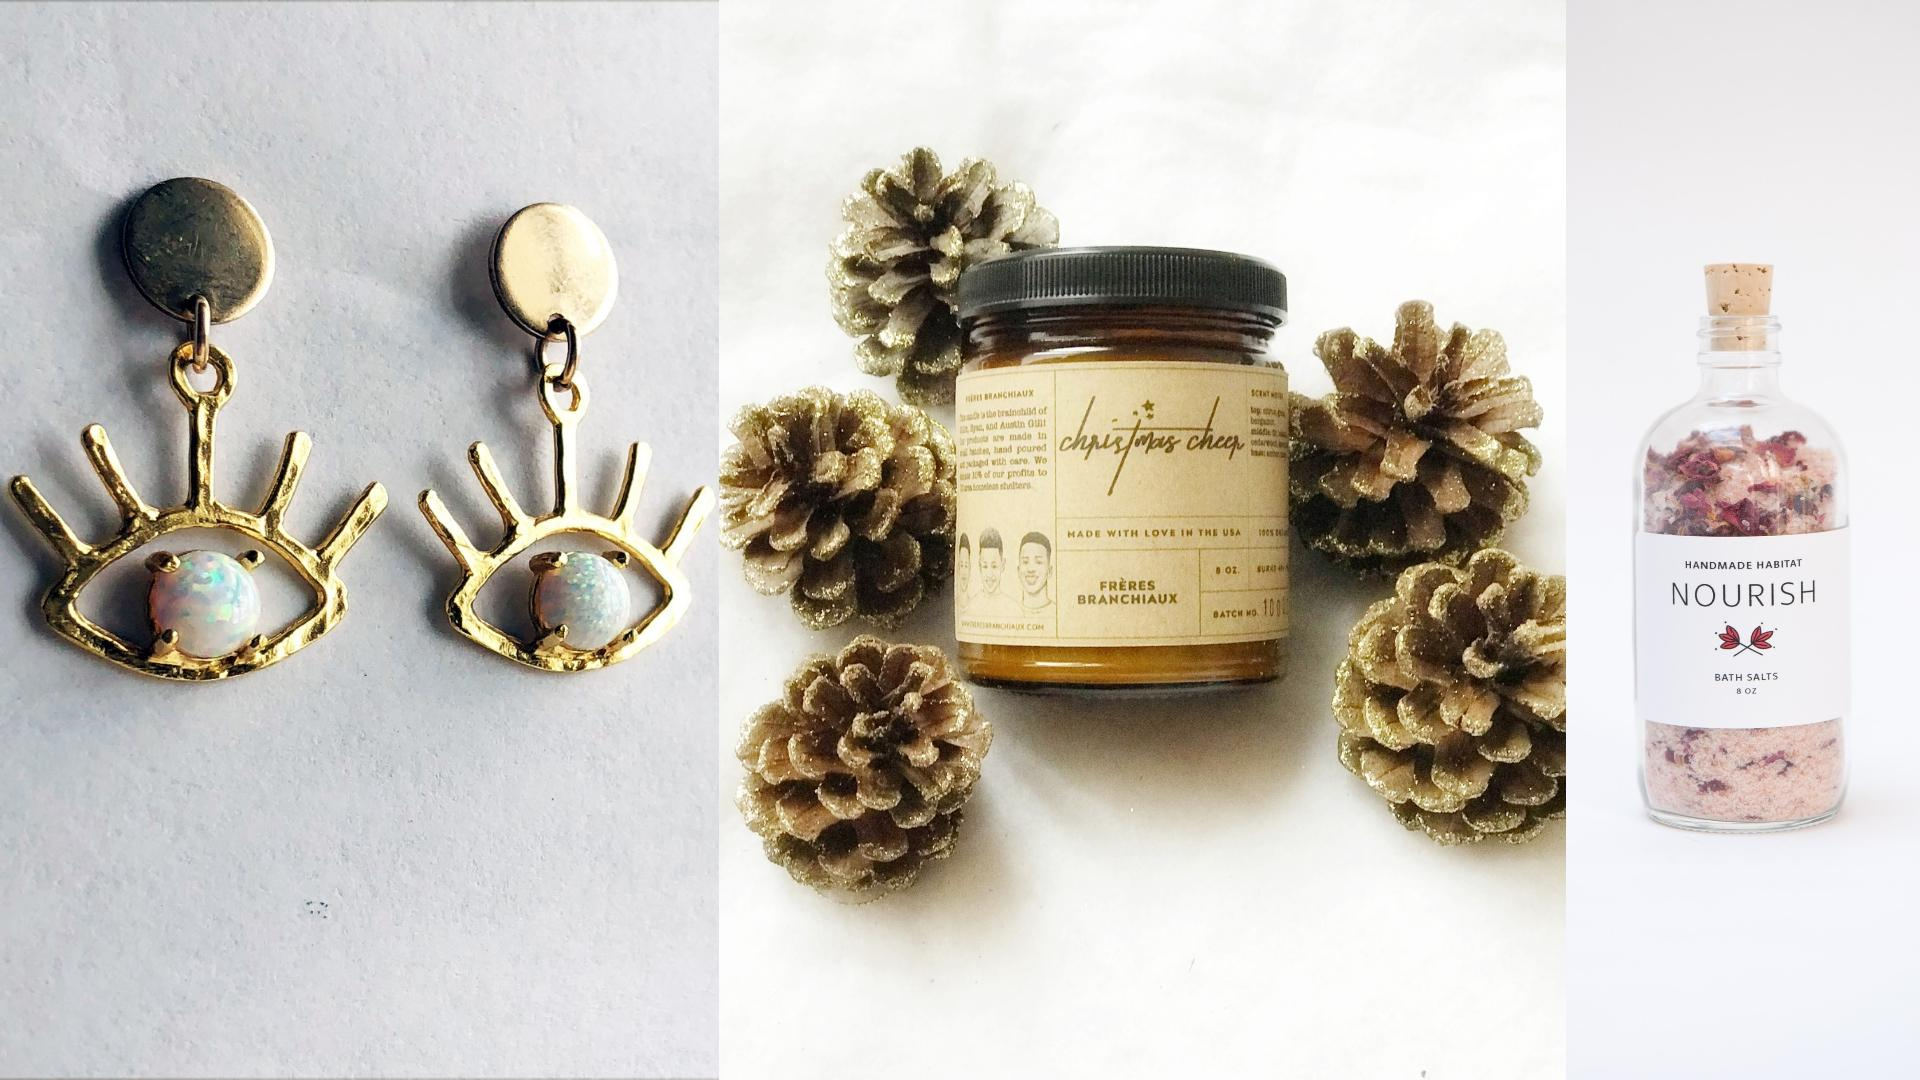 If you're still searching for the perfect gift for that fashion/beauty-obsessed lady or gent in your life, we've rounded up 12 great options sure t wow them. Bonus: All of these purchases support local businesses! (Images: Courtesy Rachel Pfeffer,{&nbsp;}Frères Branchiaux Candle Company and Handmade Habitat){&nbsp;}<p></p>